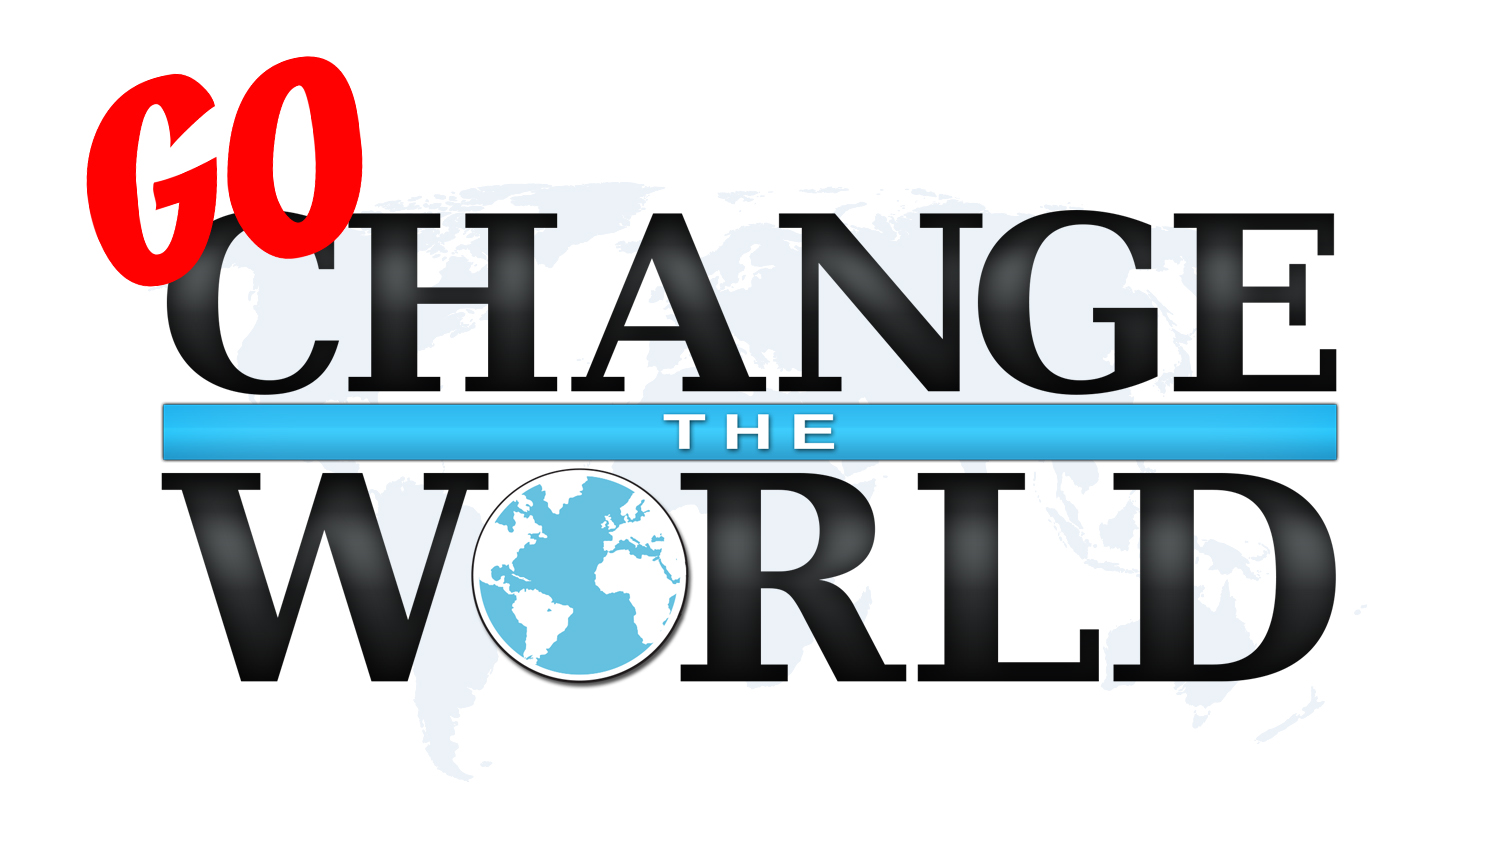 Go Change the World Week 2017